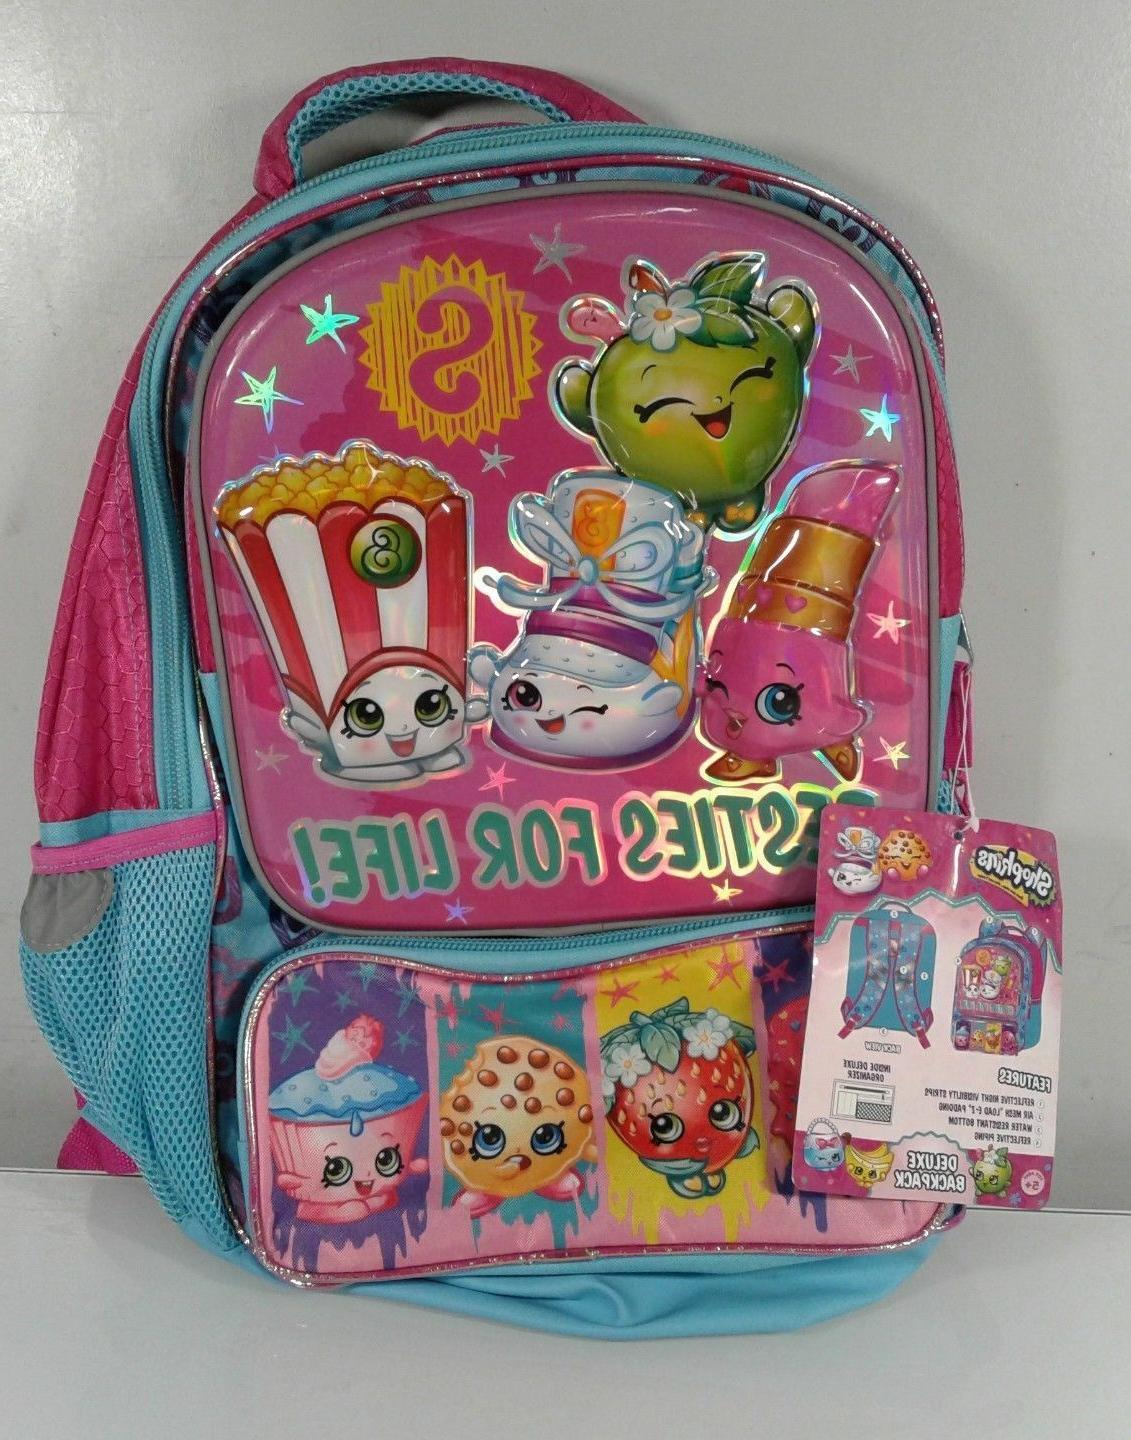 new besties for life 16 girls backpack